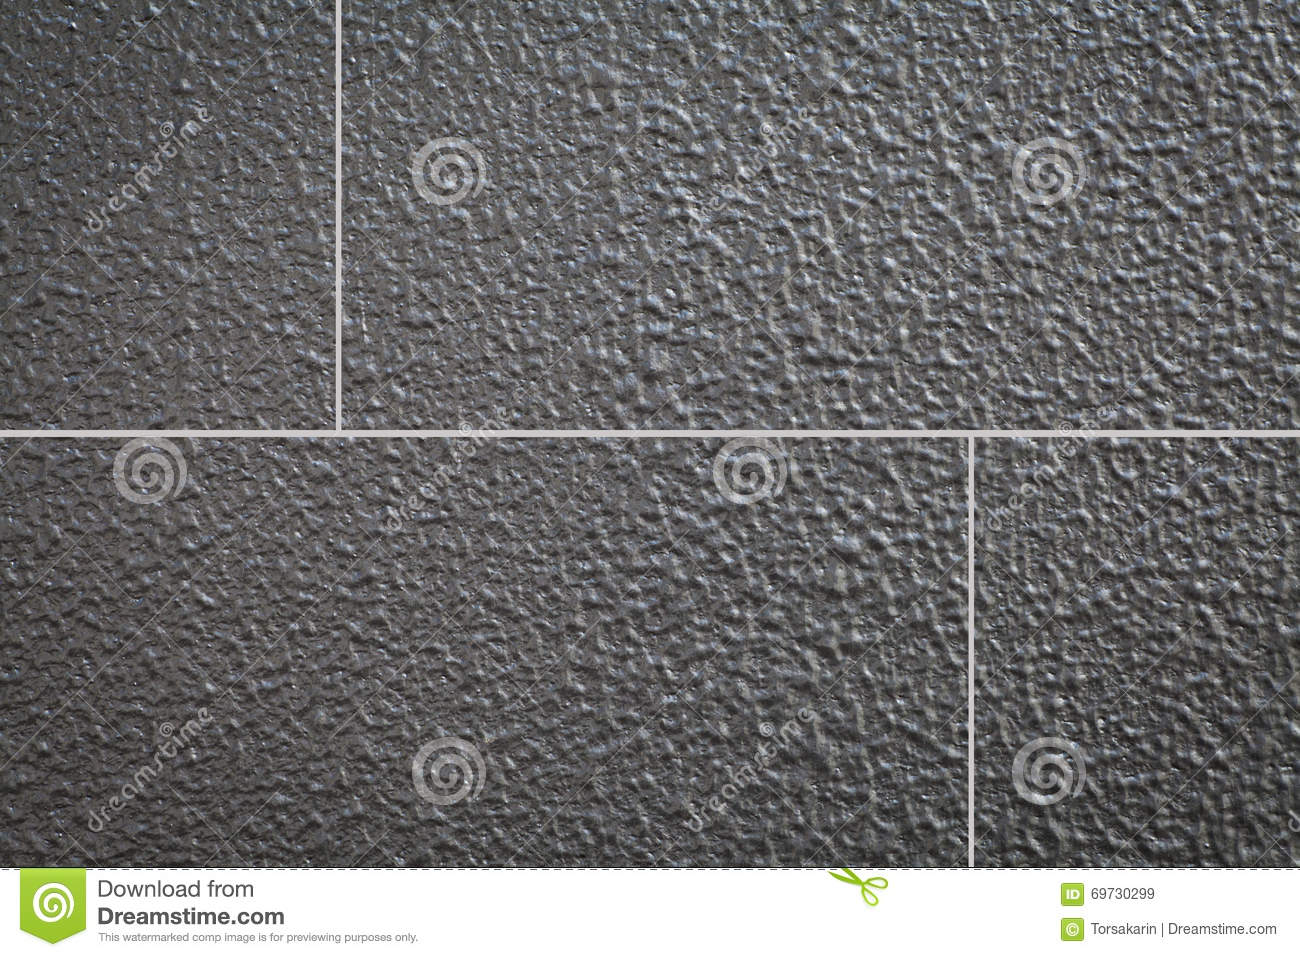 dark stone tile texture. Royalty Free Stock Photo  Download Black Stone Floor Tile Texture And Background Image